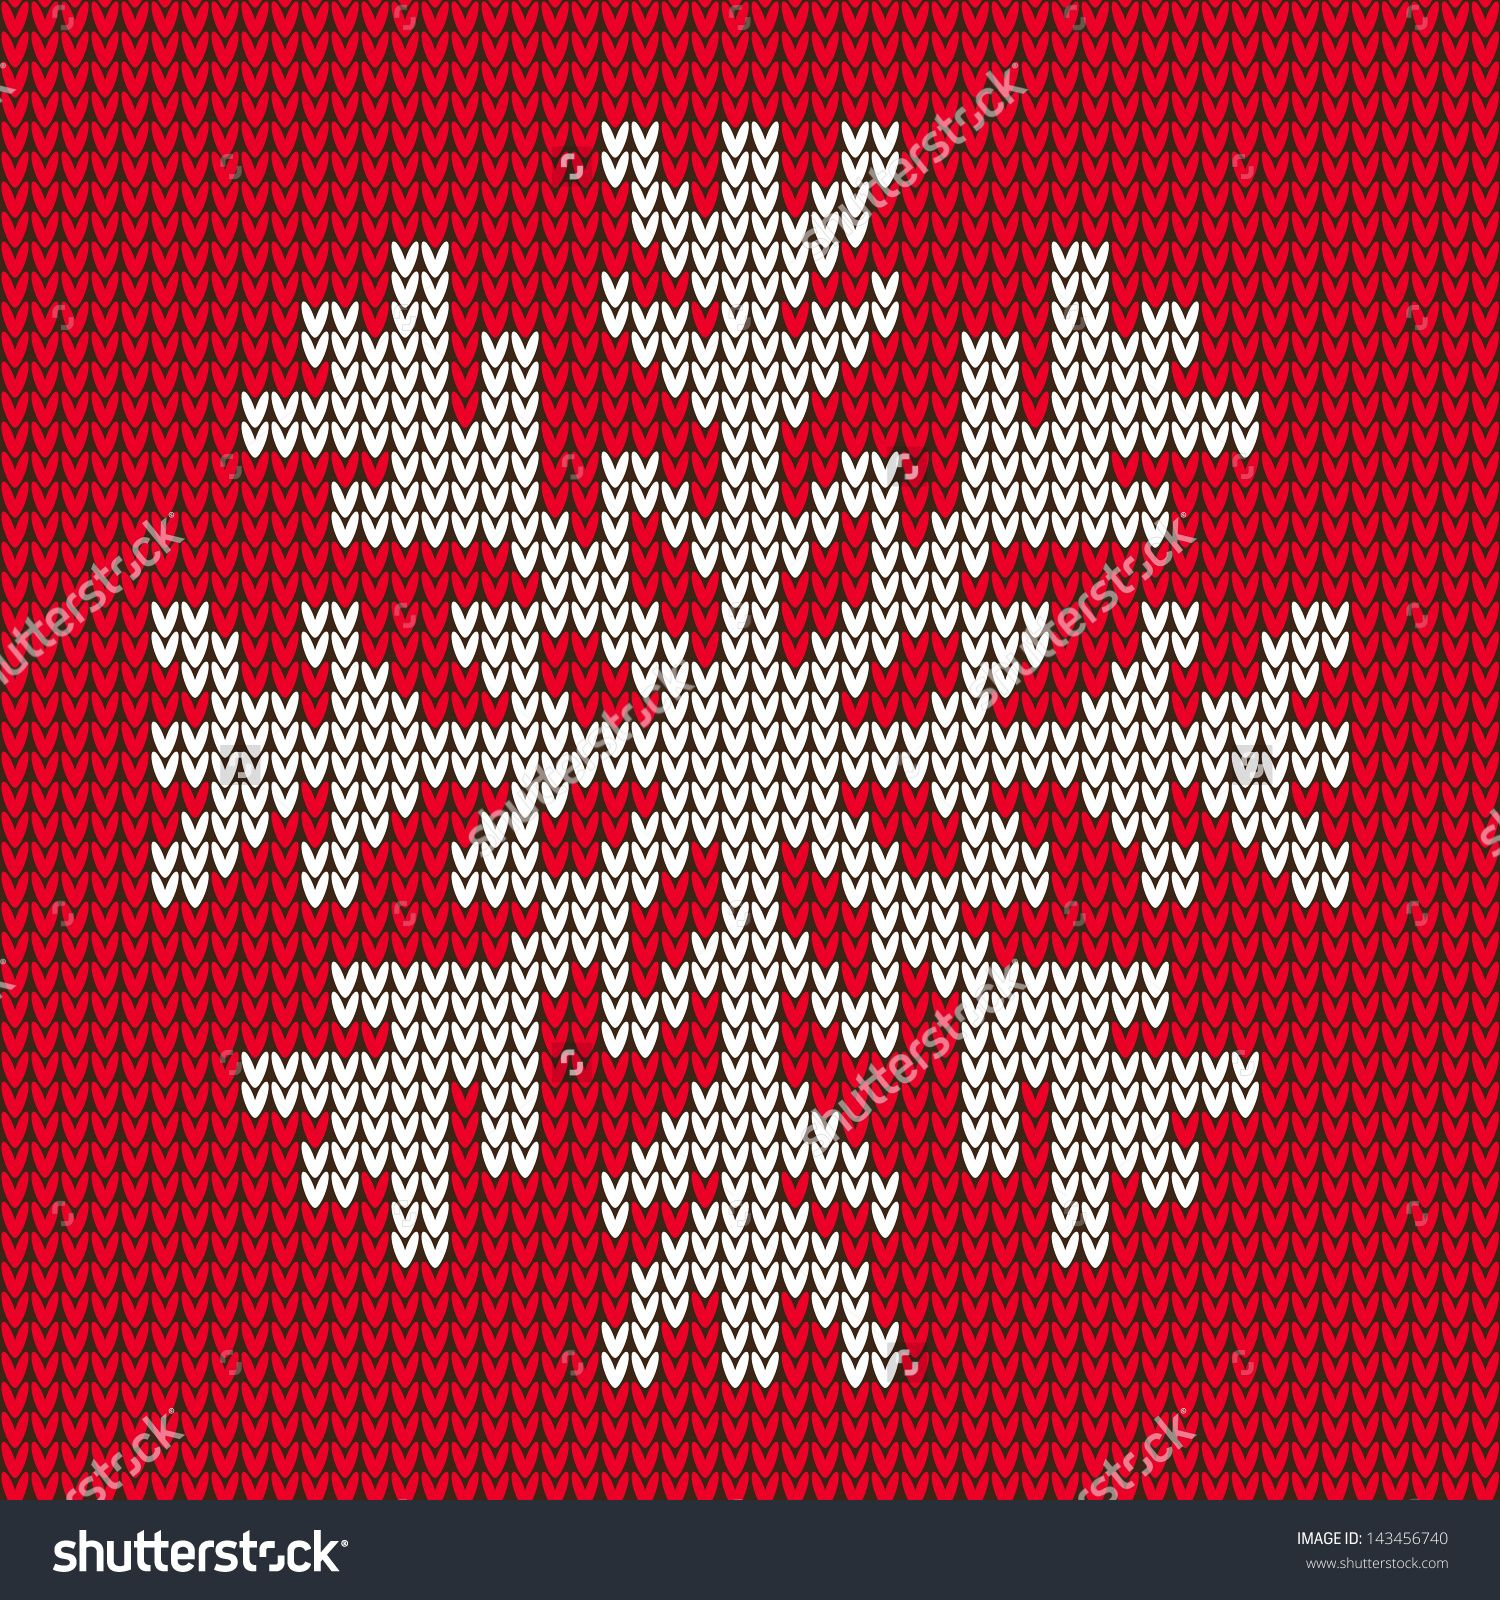 Magnificent Knit Snowflake Ornament Pattern Image Collection ...